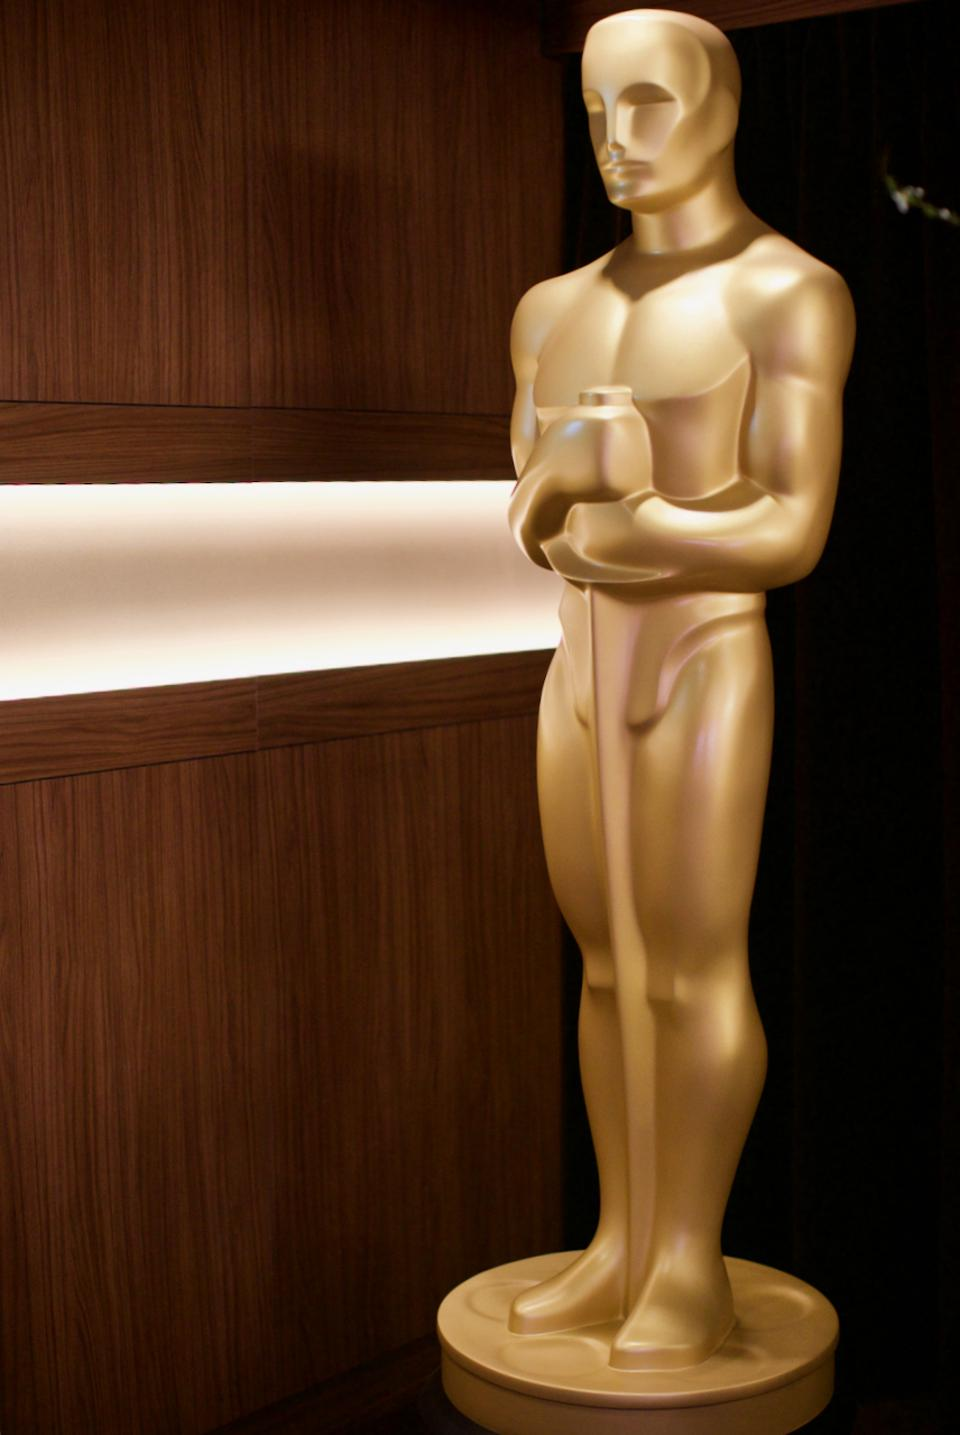 Oscar statue backstage at the Dolby Theater